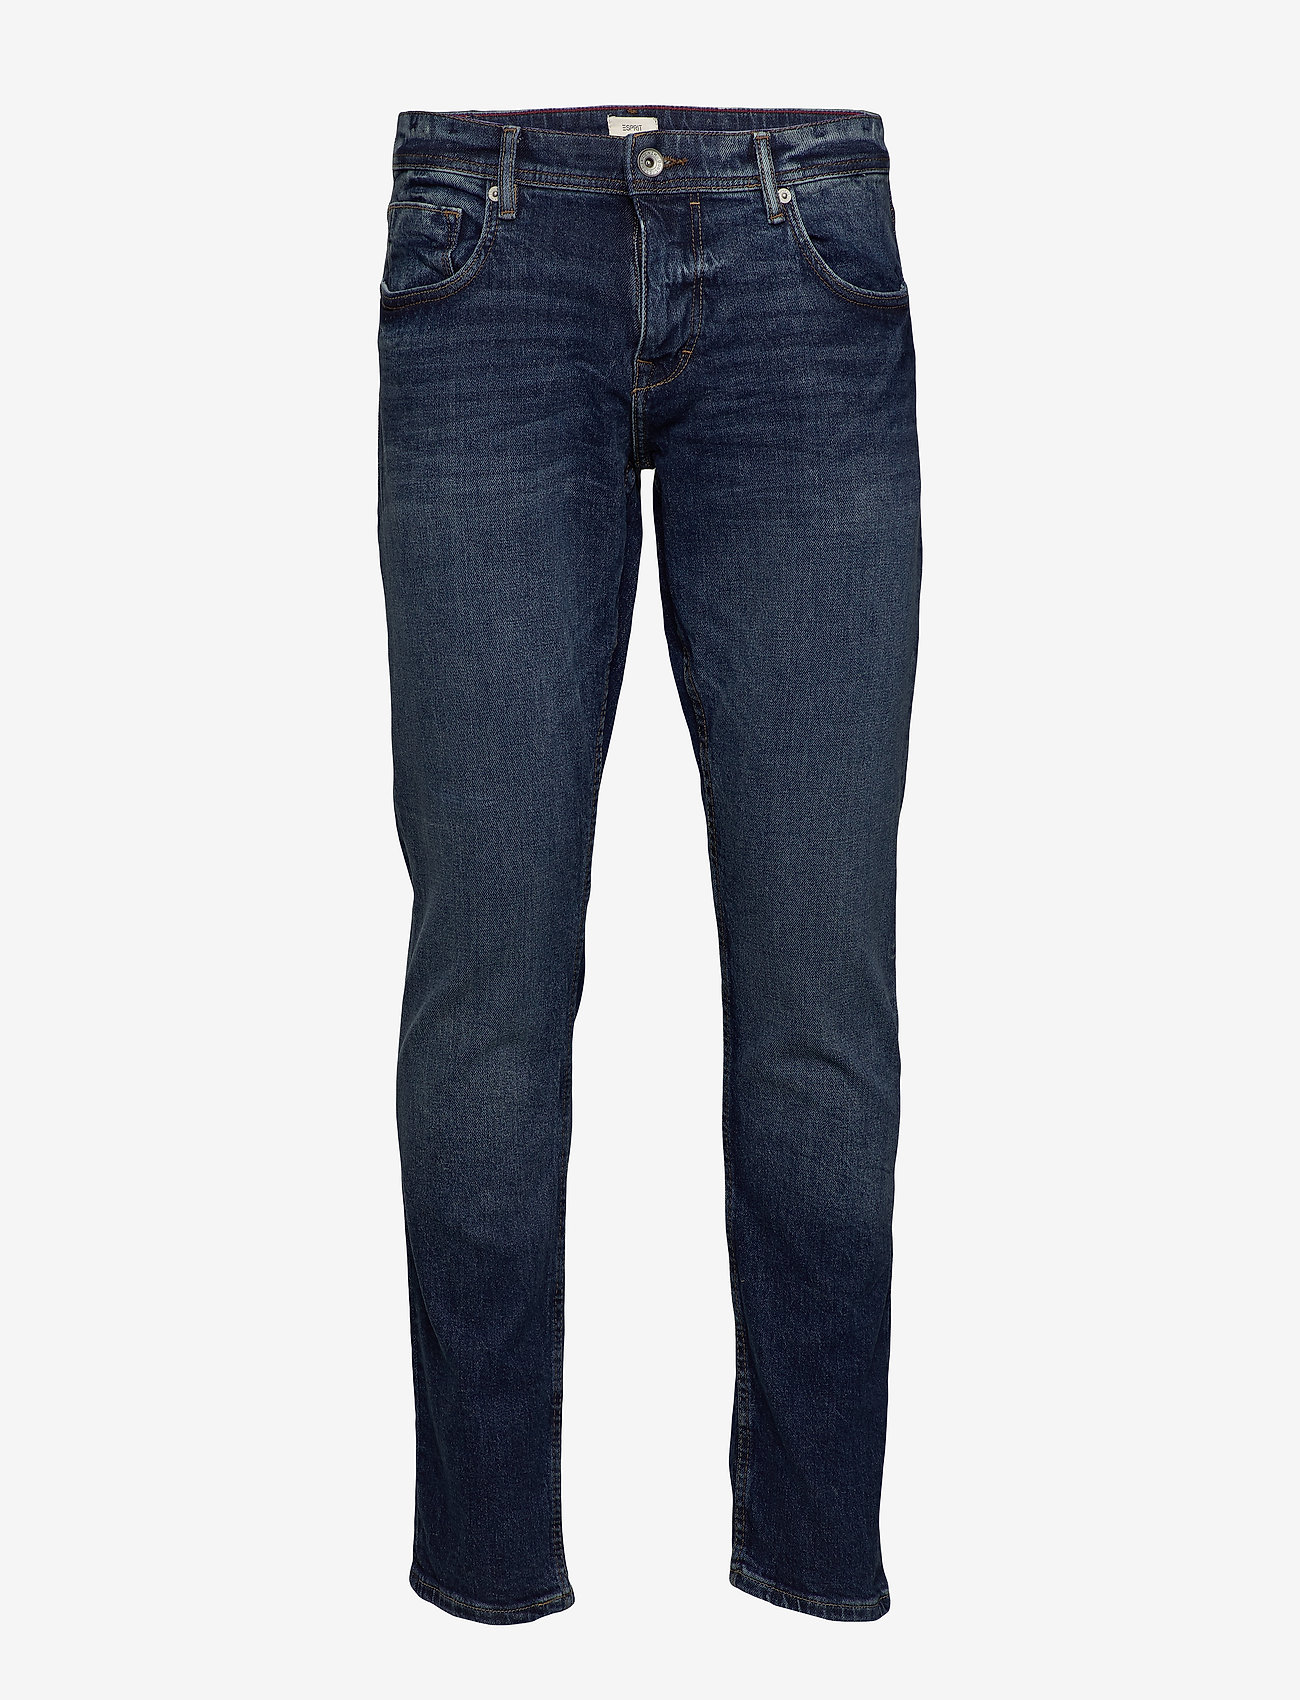 Esprit Casual - Pants denim - slim jeans - blue dark wash - 0